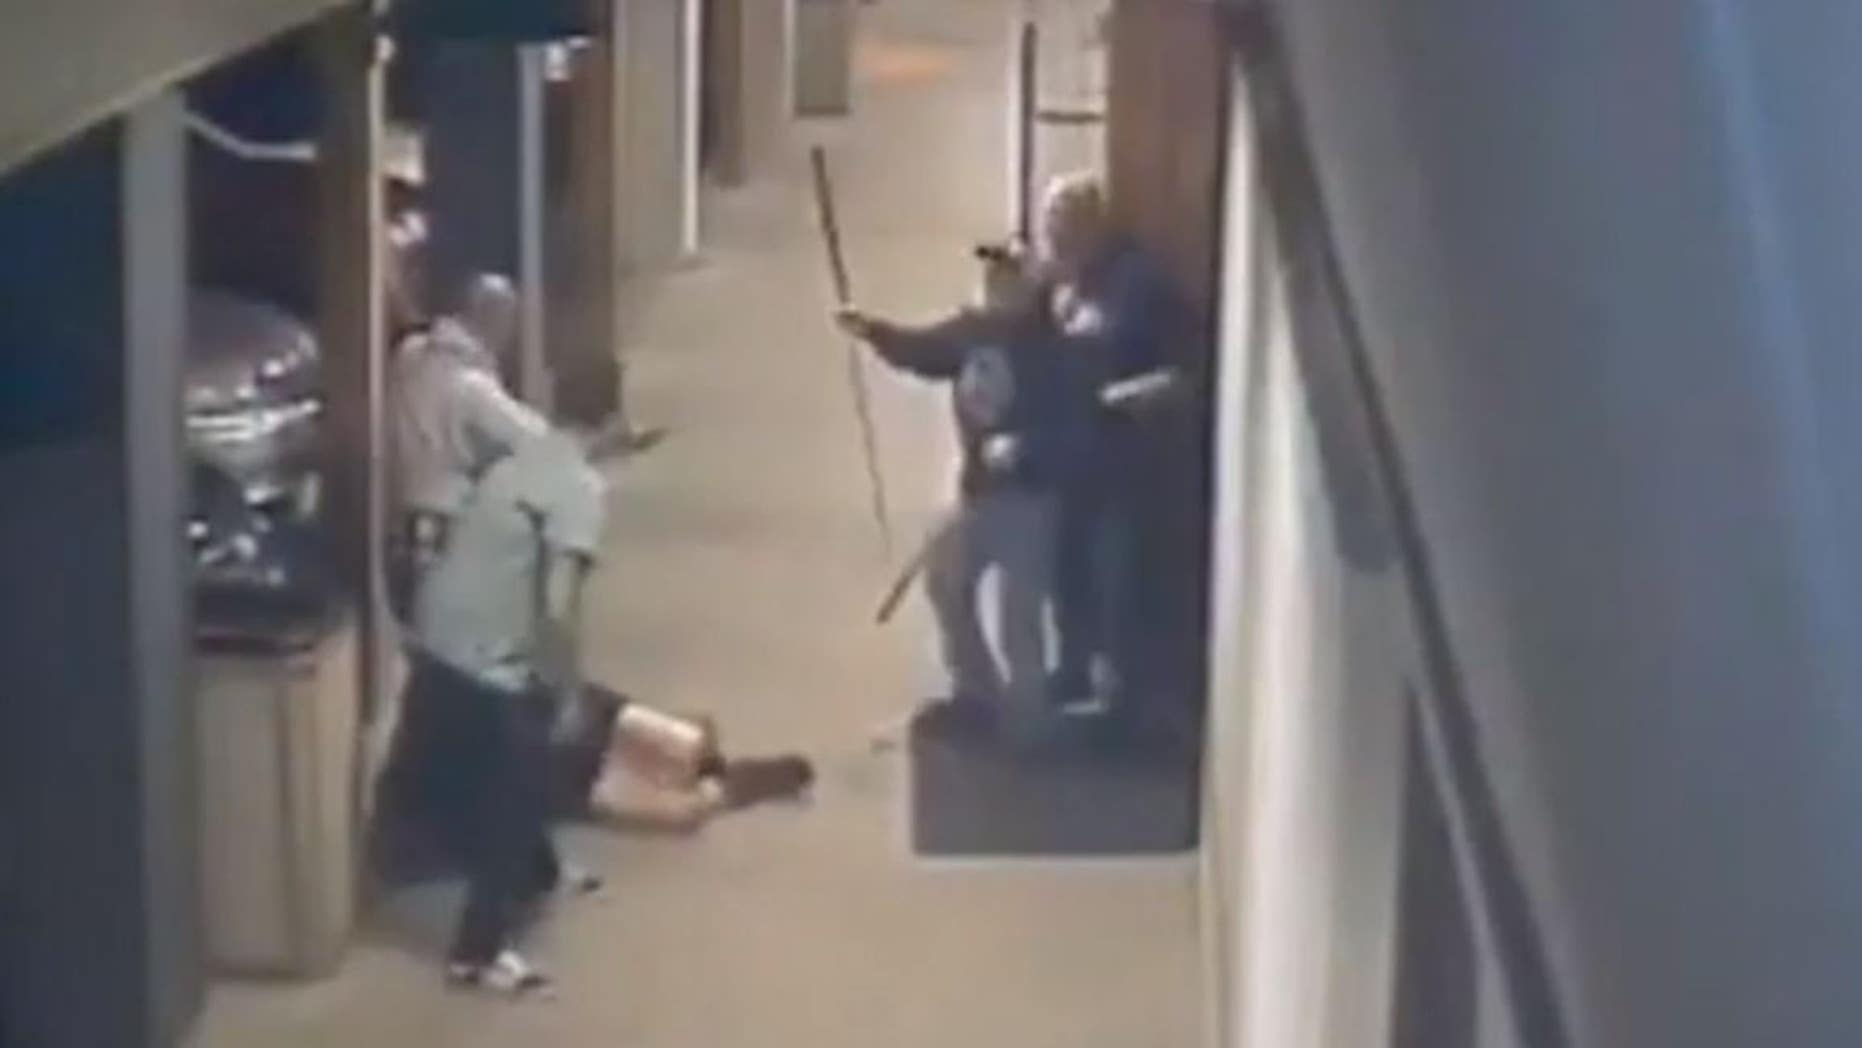 Security camera footage of a Napa, Calif., bar released by police shows two men attacking a woman while other patrons try to intervene.